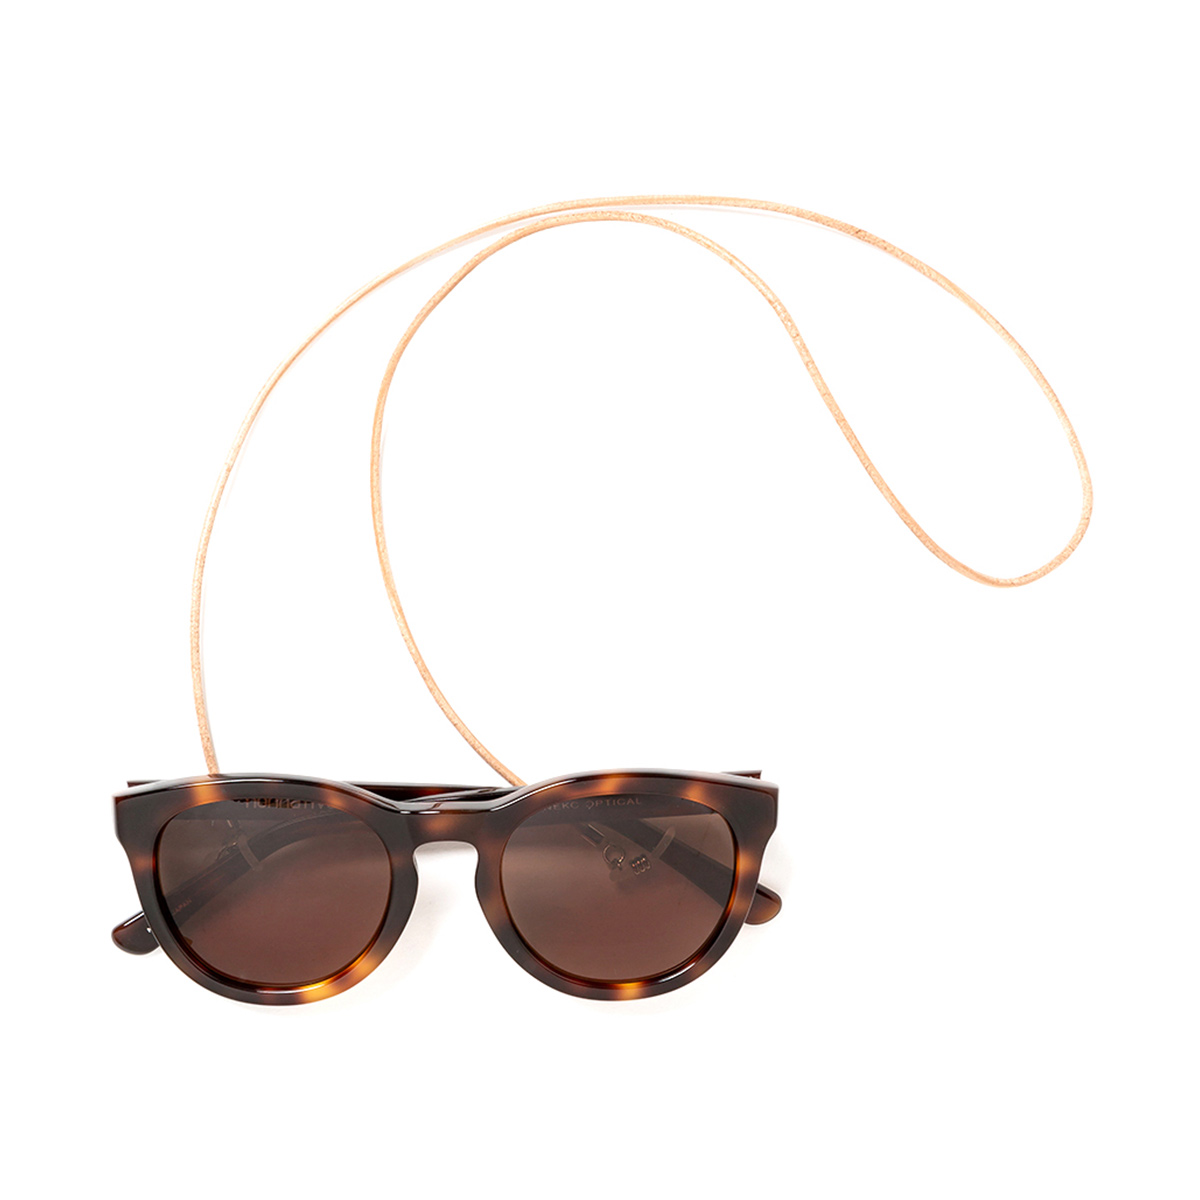 nonnative / DWELLER SUNGLASSES WITH LEATHER CODE (Brown)